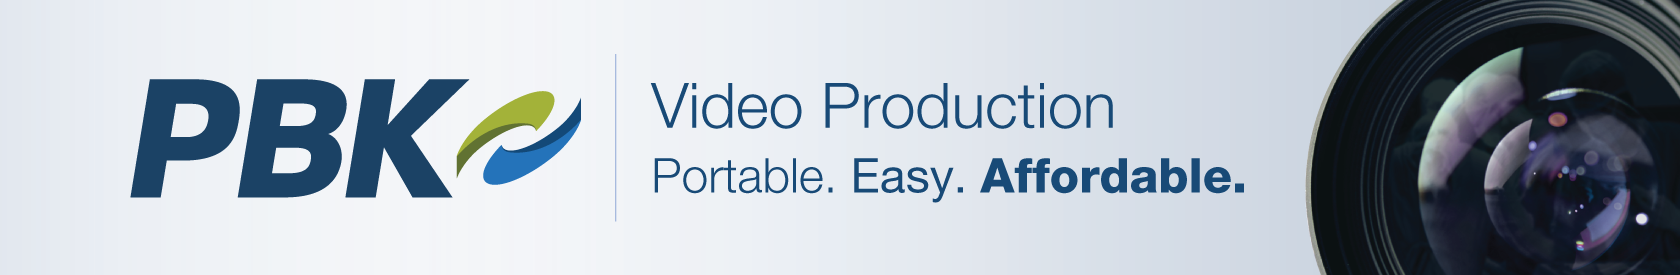 PBK - Video Production - Portable. Easy. Affordable.